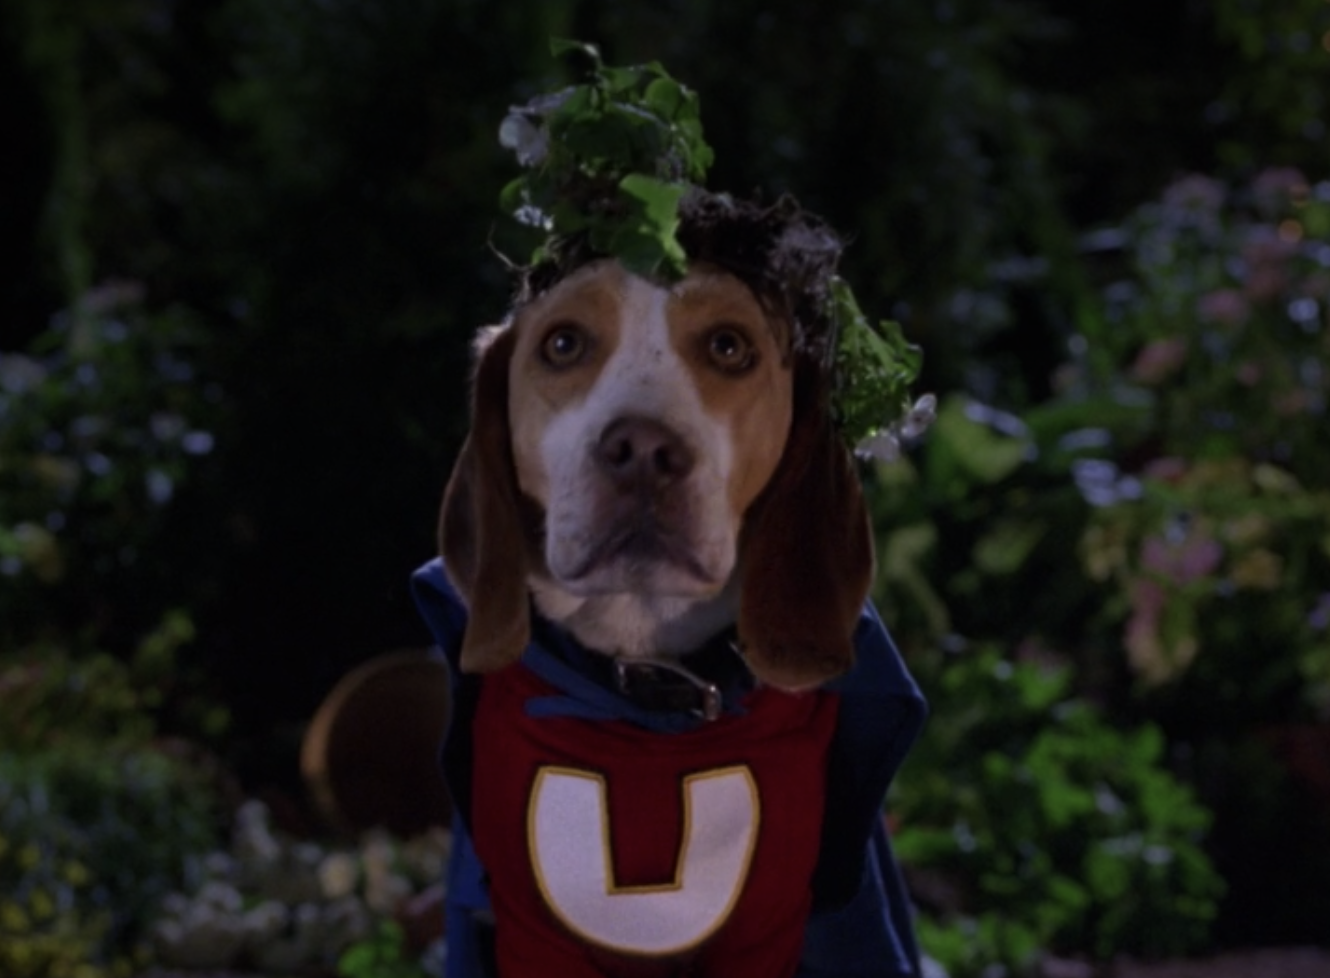 Underdog wears his suit and has a plant on his head